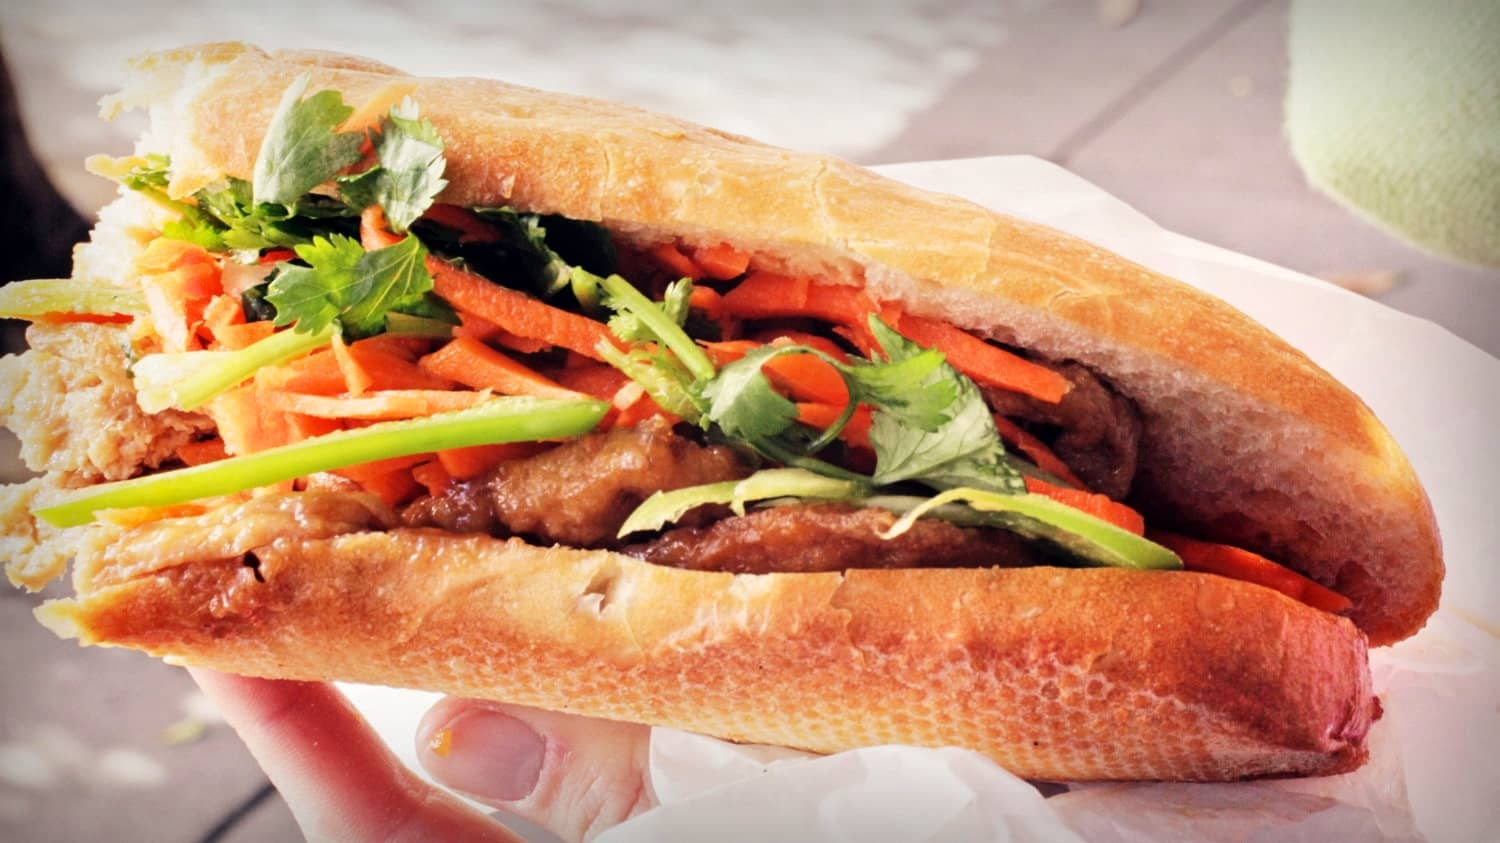 Banh Mi -   Cost $1.00 -  Bánh mì is the Vietnamese word for bread. Bread, or more specifically the baguette, was introduced by the French during the colonial period in Vietnam. These baguettes are usually stuffed with a local Pâté (a mixture of cooked ground meat and fat minced into a spreadable paste), vegetables and an egg.